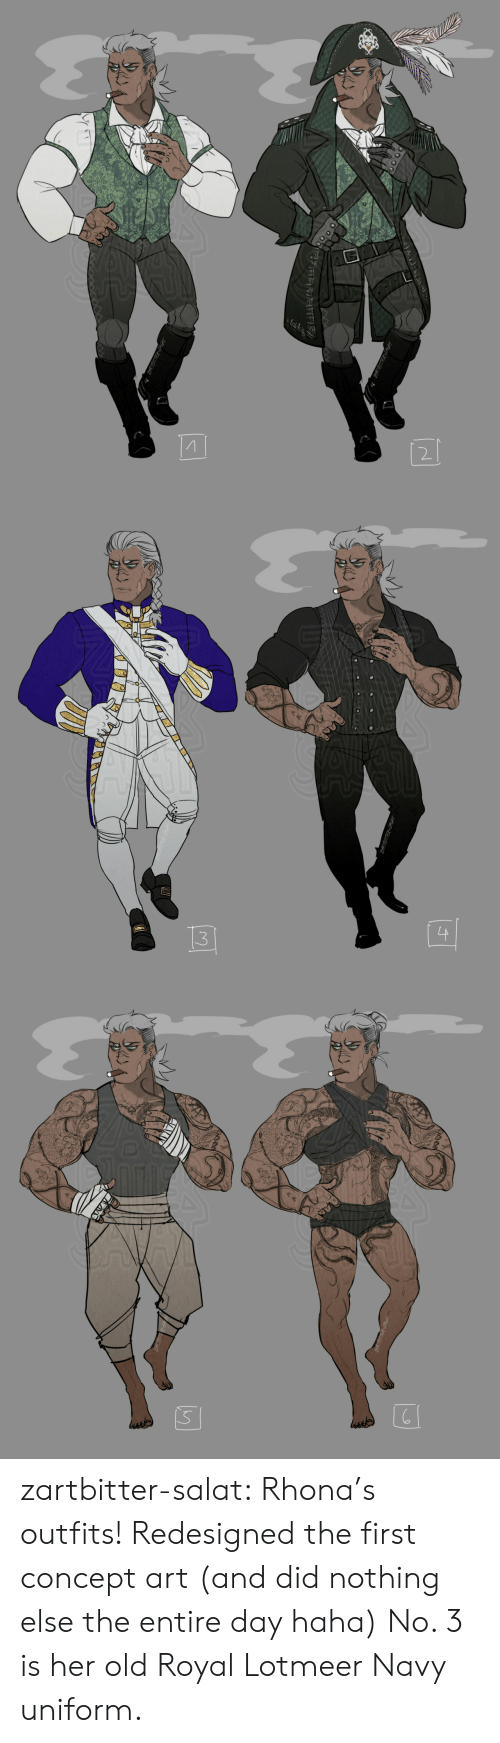 Tumblr, Blog, and Http: ZARTBITTER PIGAT  RTBITTERPIGAT  র{(टৰ   3  ZARTBITTER-SAGAT   S  ussde zartbitter-salat:  Rhona's outfits! Redesigned the first concept art (and did nothing else  the entire day haha) No. 3 is her old Royal Lotmeer Navy uniform.